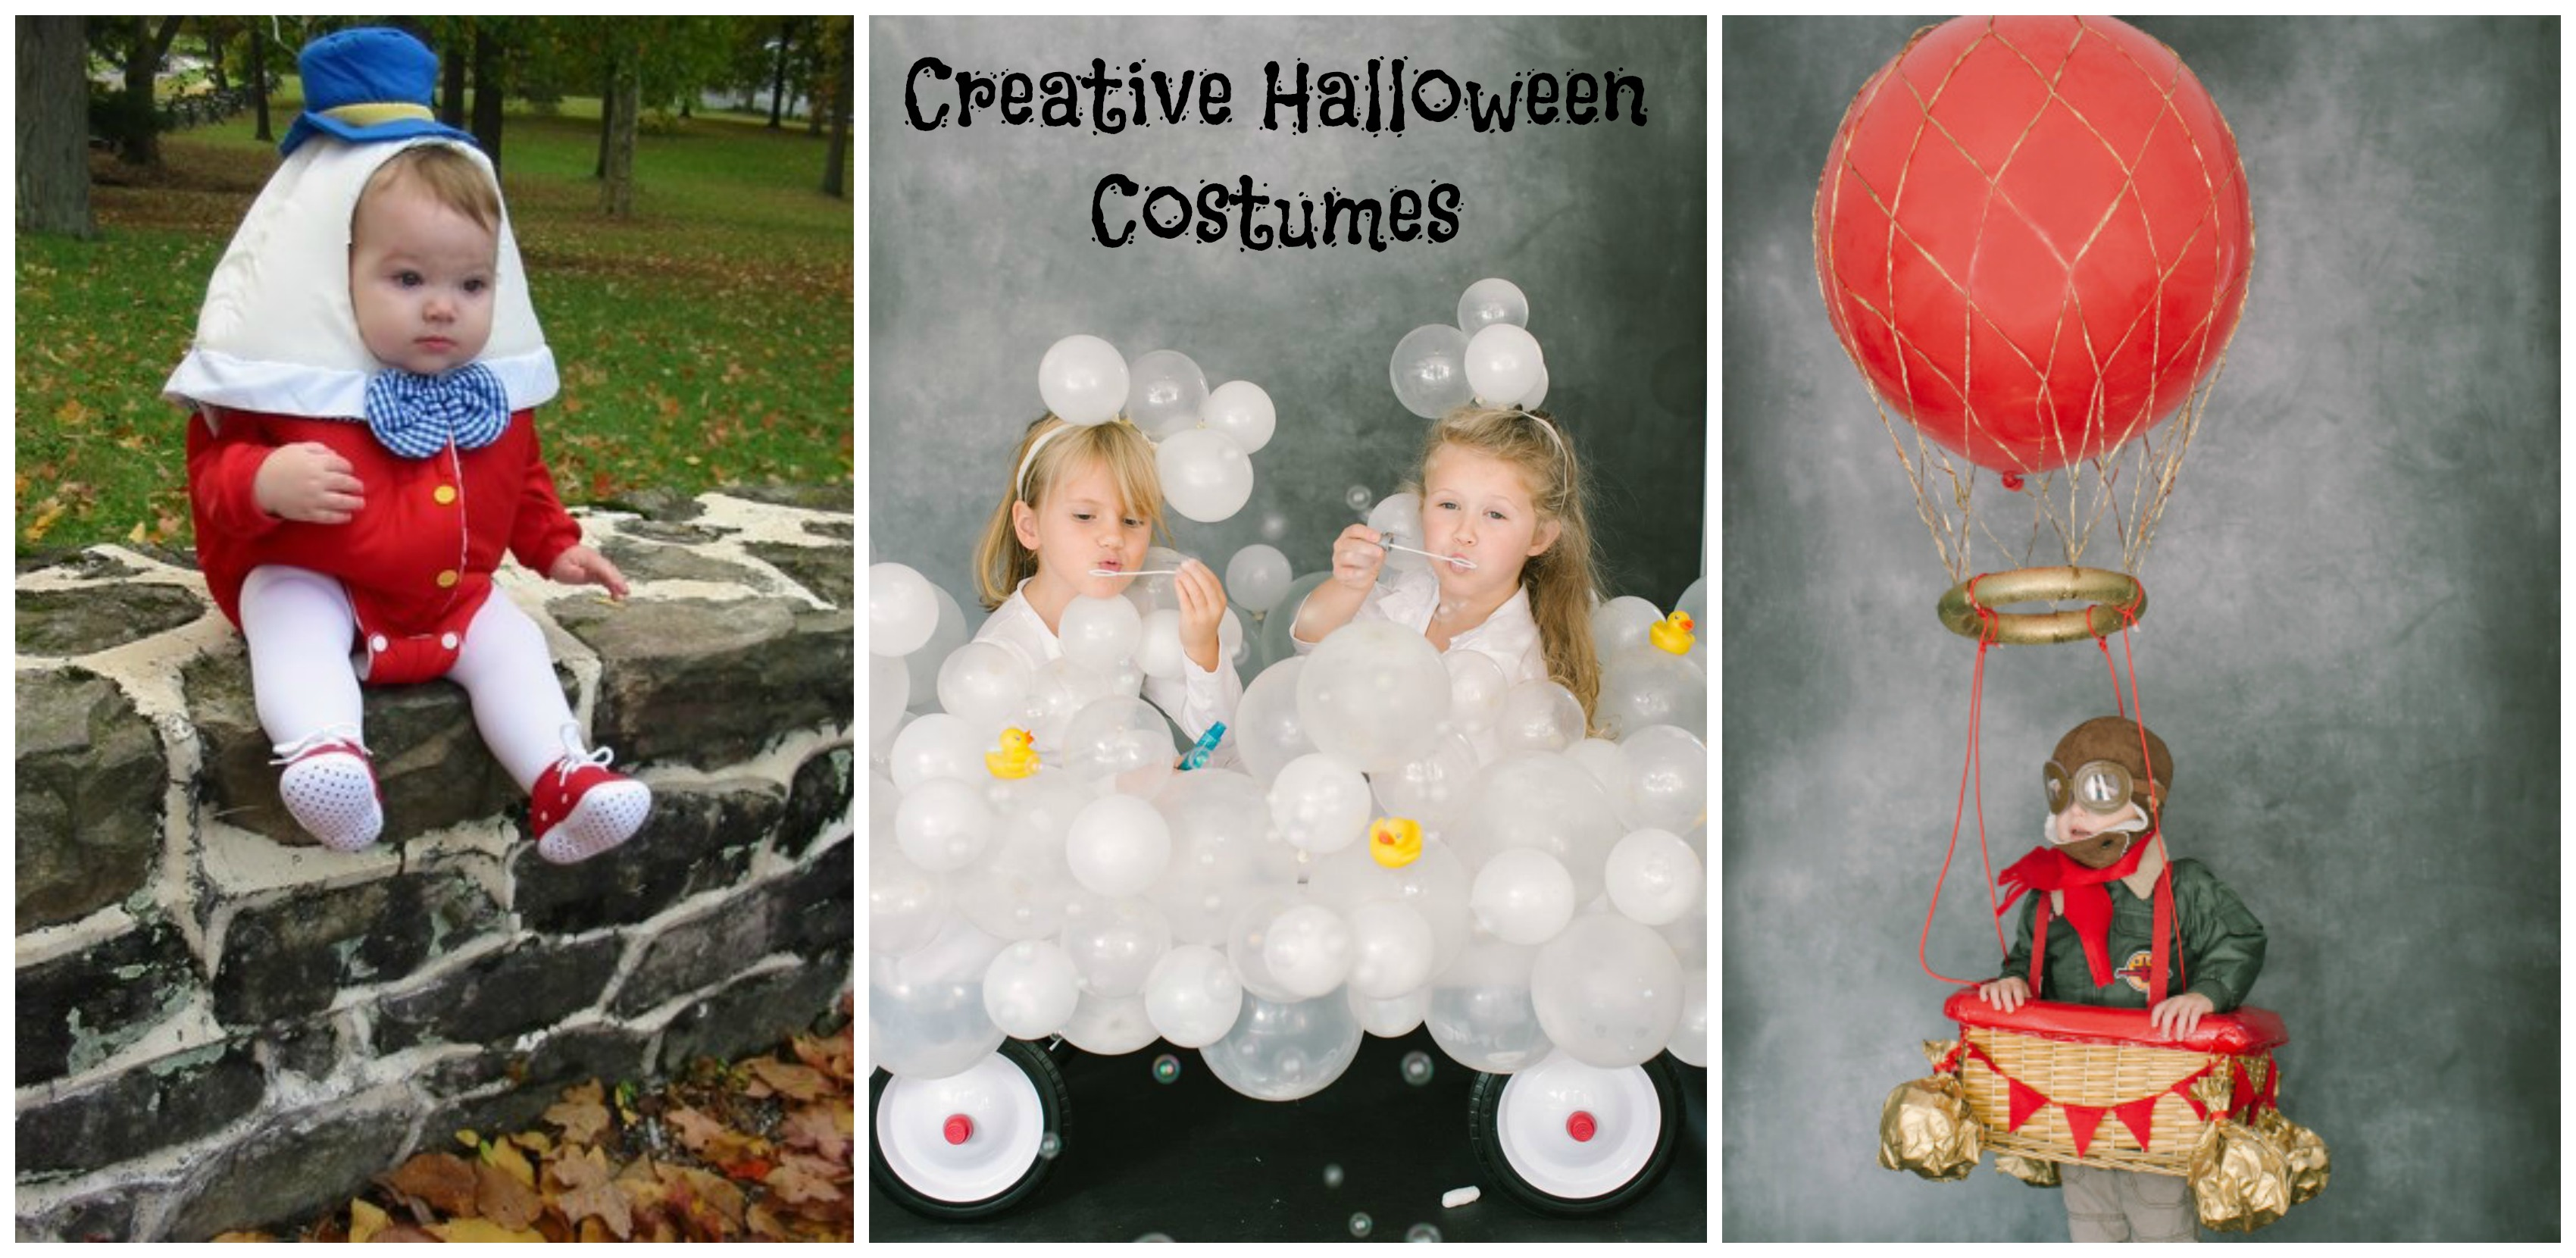 Creative Halloween Costumes Collage  sc 1 st  Sincerely Kymberly & Creative Halloween Costumes for the Family